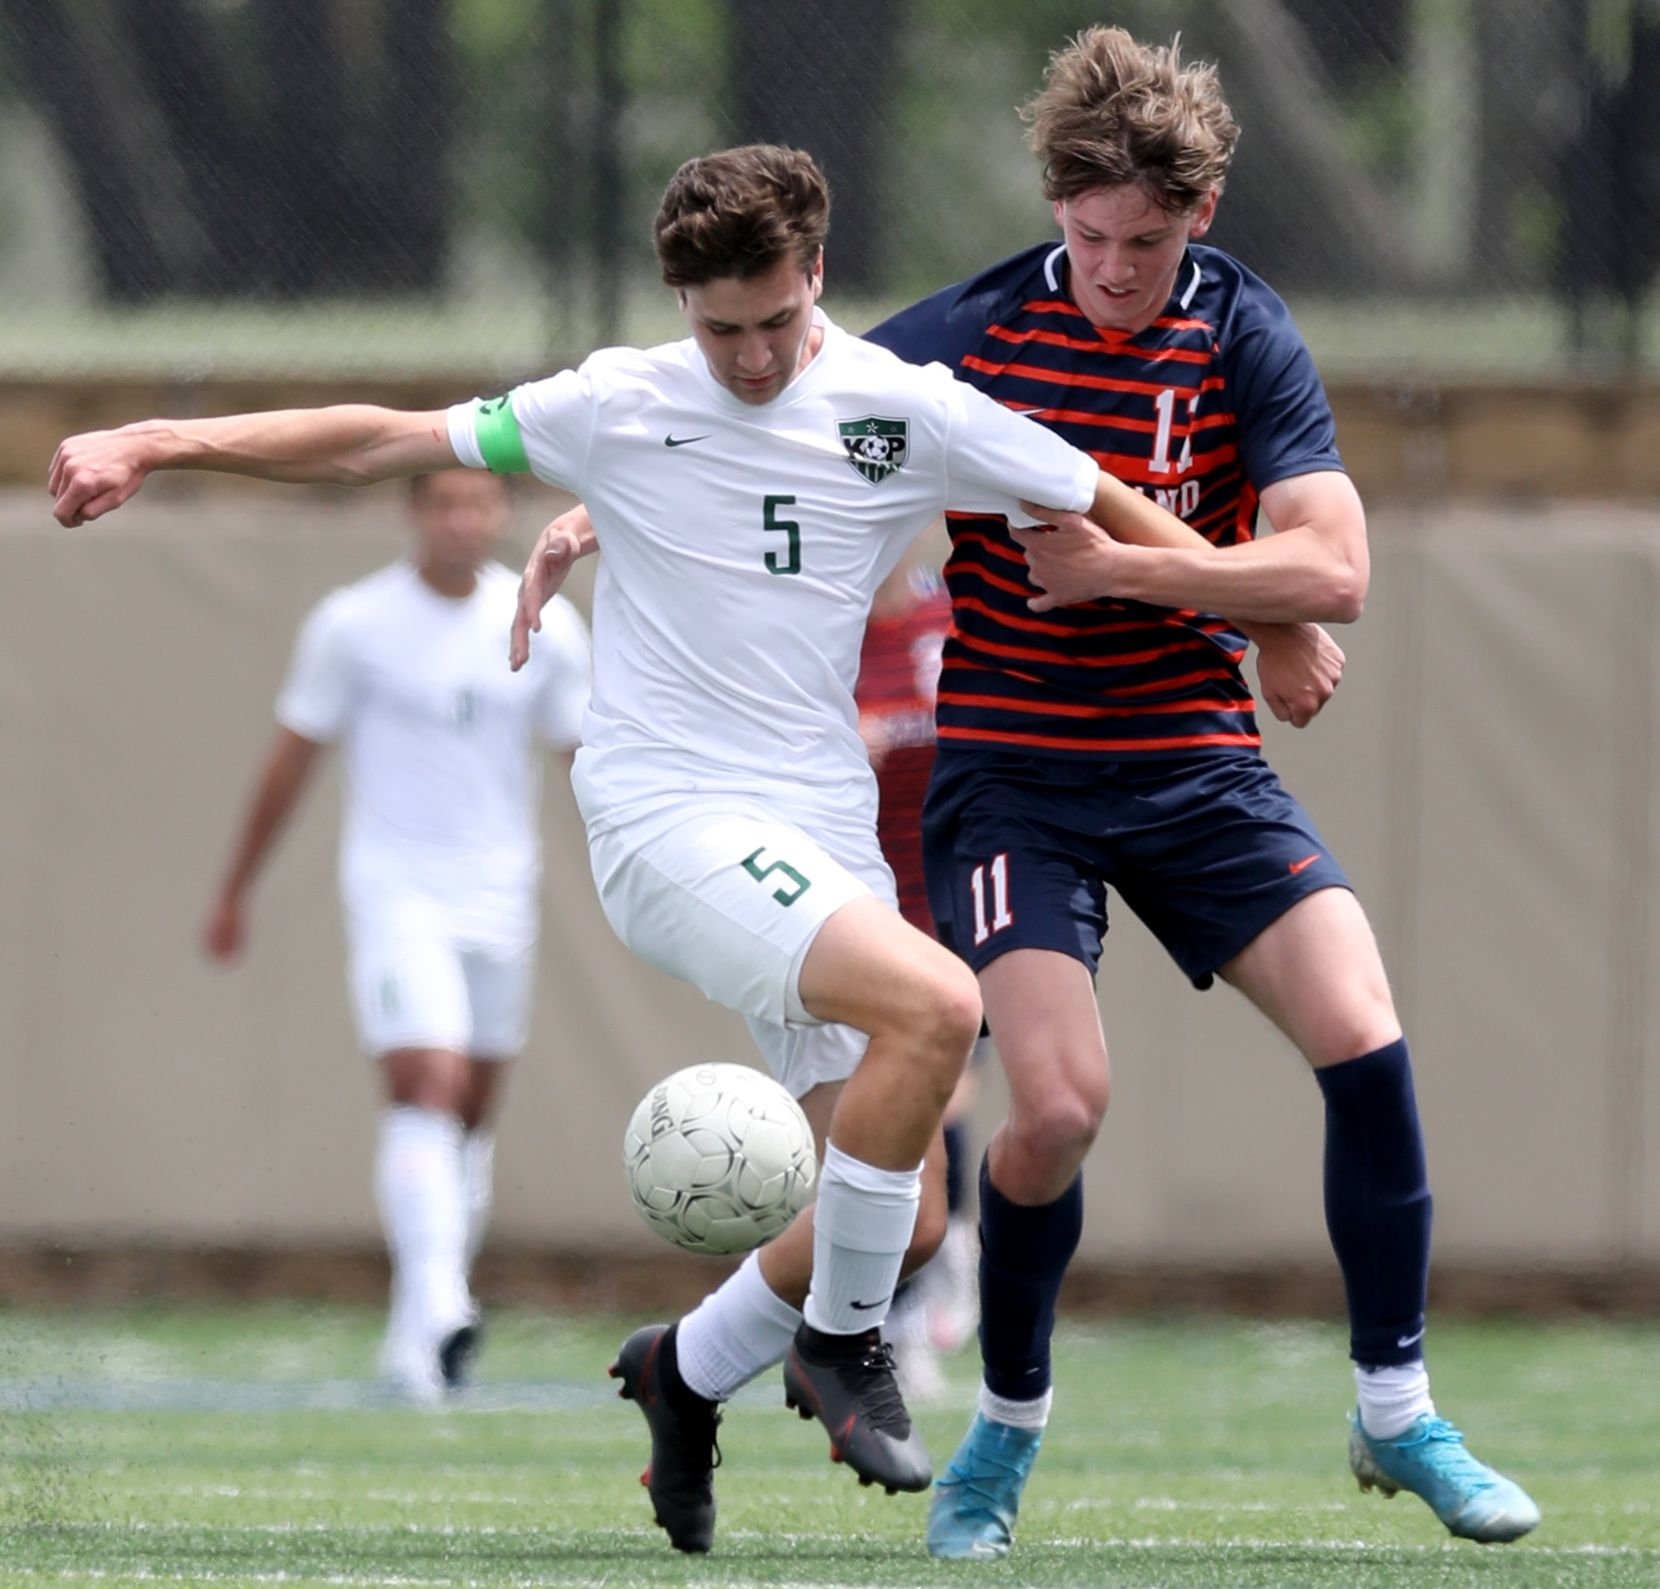 Frisco Wakeland's William Heidman (11) and Humble Kingwood Park's Brandon Rogers (5) struggle for control of the ball during their UIL 5A boys State championship soccer game at Birkelbach Field on April 17, 2021 in Georgetown, Texas.